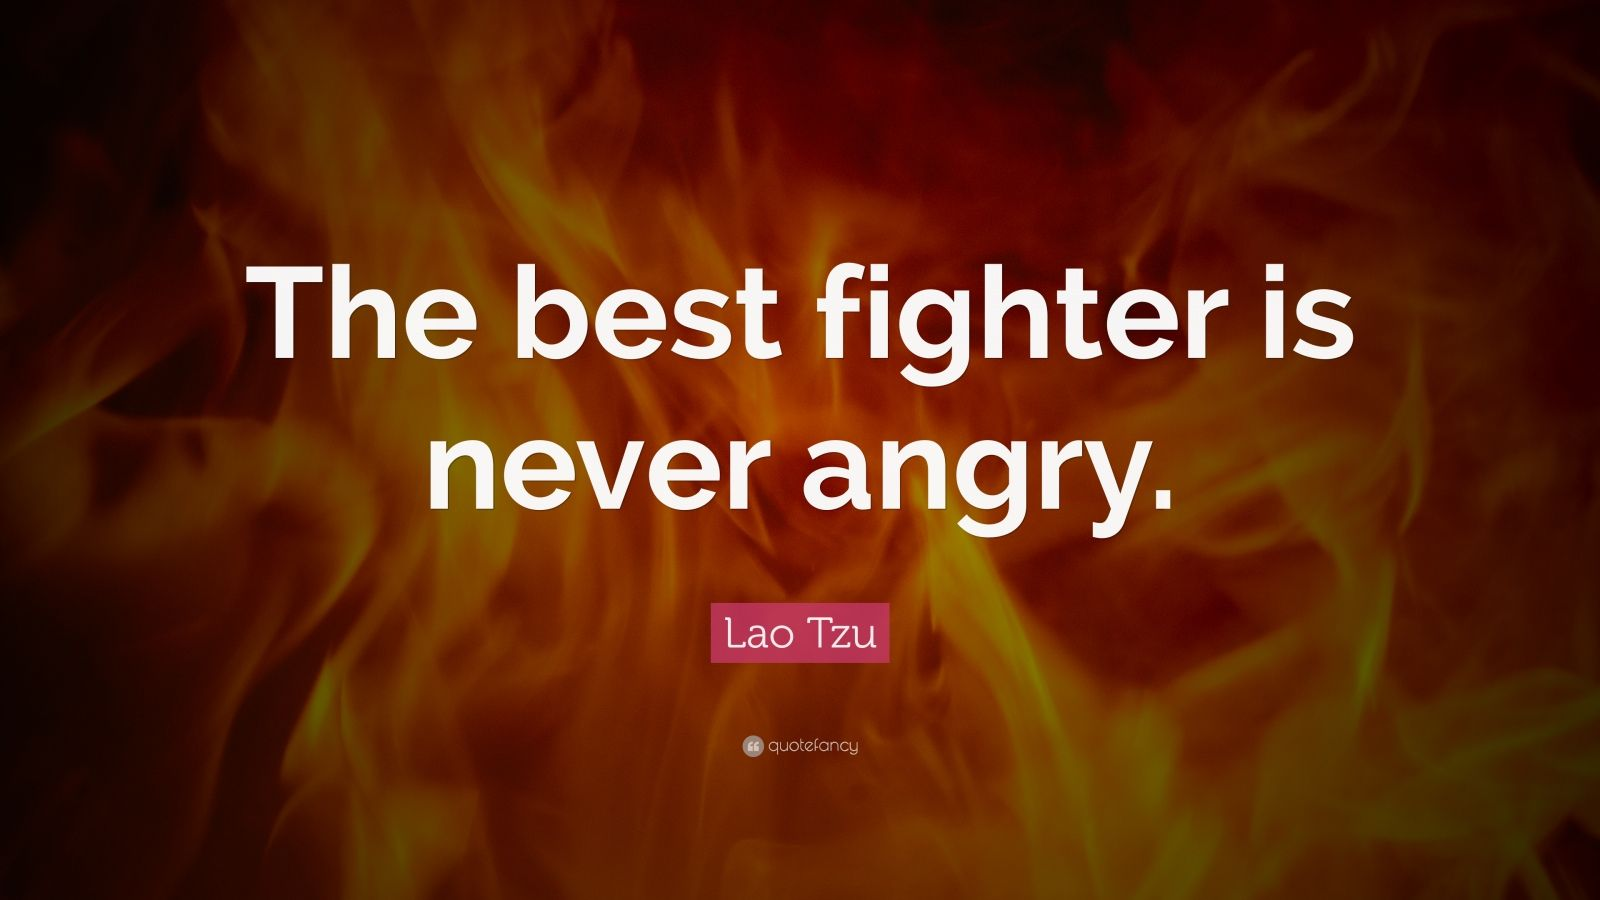 Lao Tzu the Best Is Never Angry Fighter